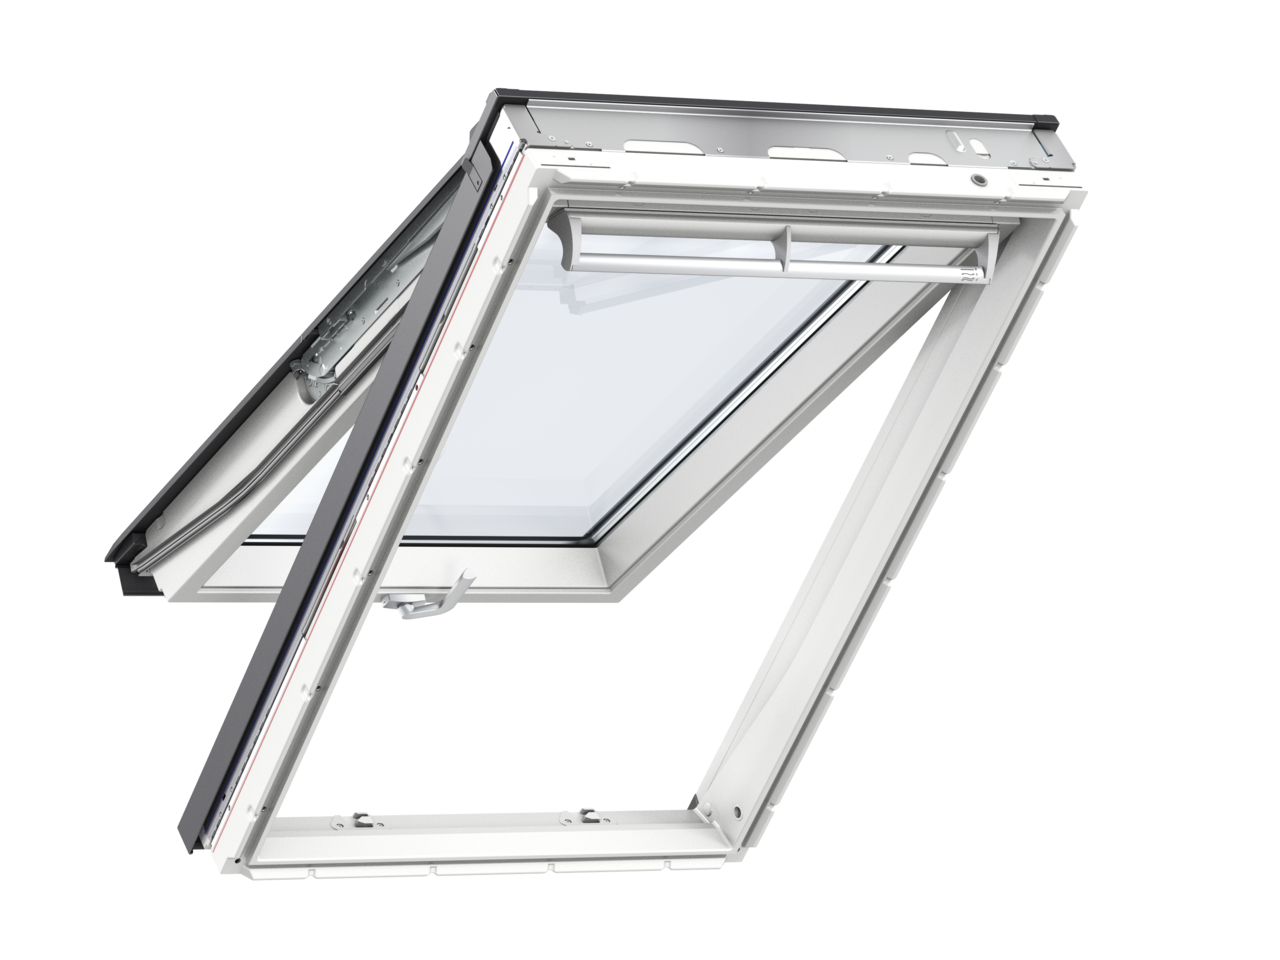 Velux GPU MK08 780 x 1400mm Top Hung 60Pane Roof Window - White Polyurethane